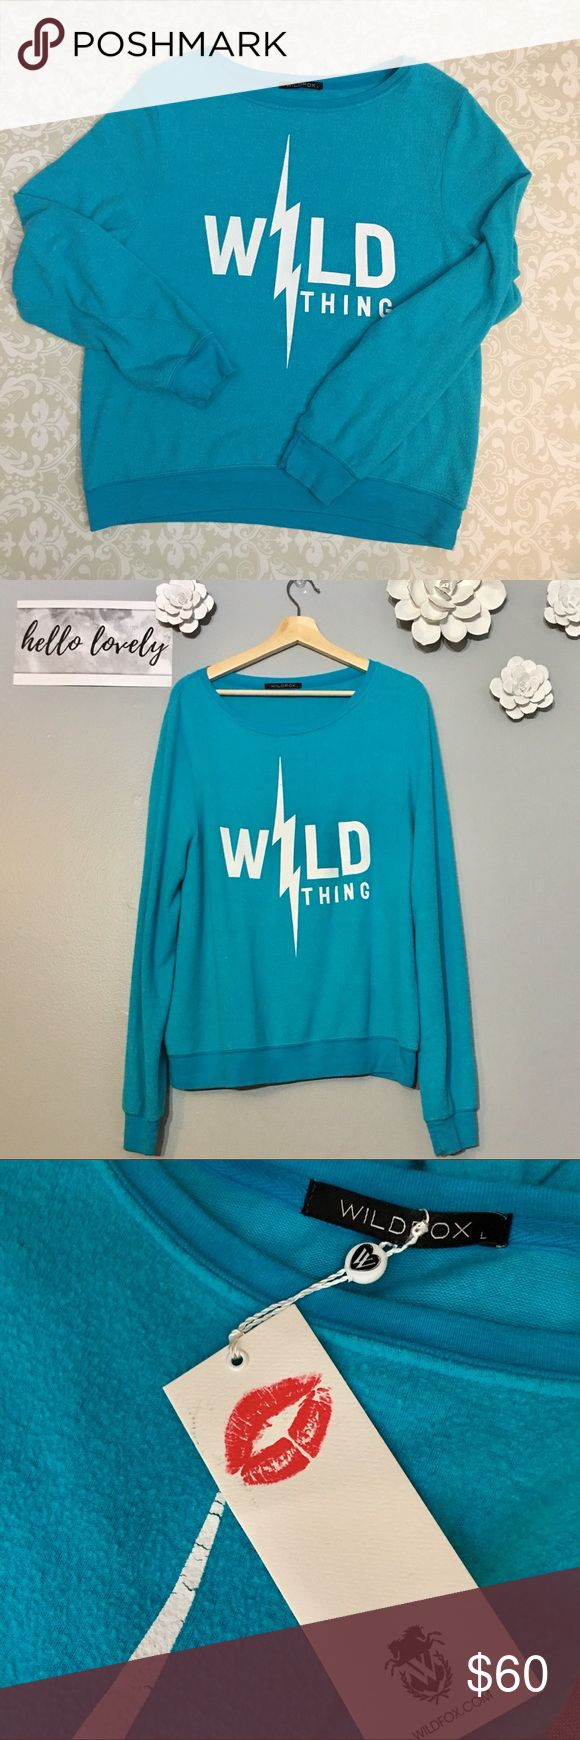 """💥⚡️Wildfox Wild Thing Baggy Beach Jumper! SZ L Like New Wildfox Wild Thing Baggy Beach Jumper! Fun Turquoise color, super soft! Worn twice. Usual Wildfox piling which is standard for this style and the extra long sleeves. 26"""" length in front. No rips, stains or tears. Non smoking home. Wildfox Tops Sweatshirts & Hoodies"""